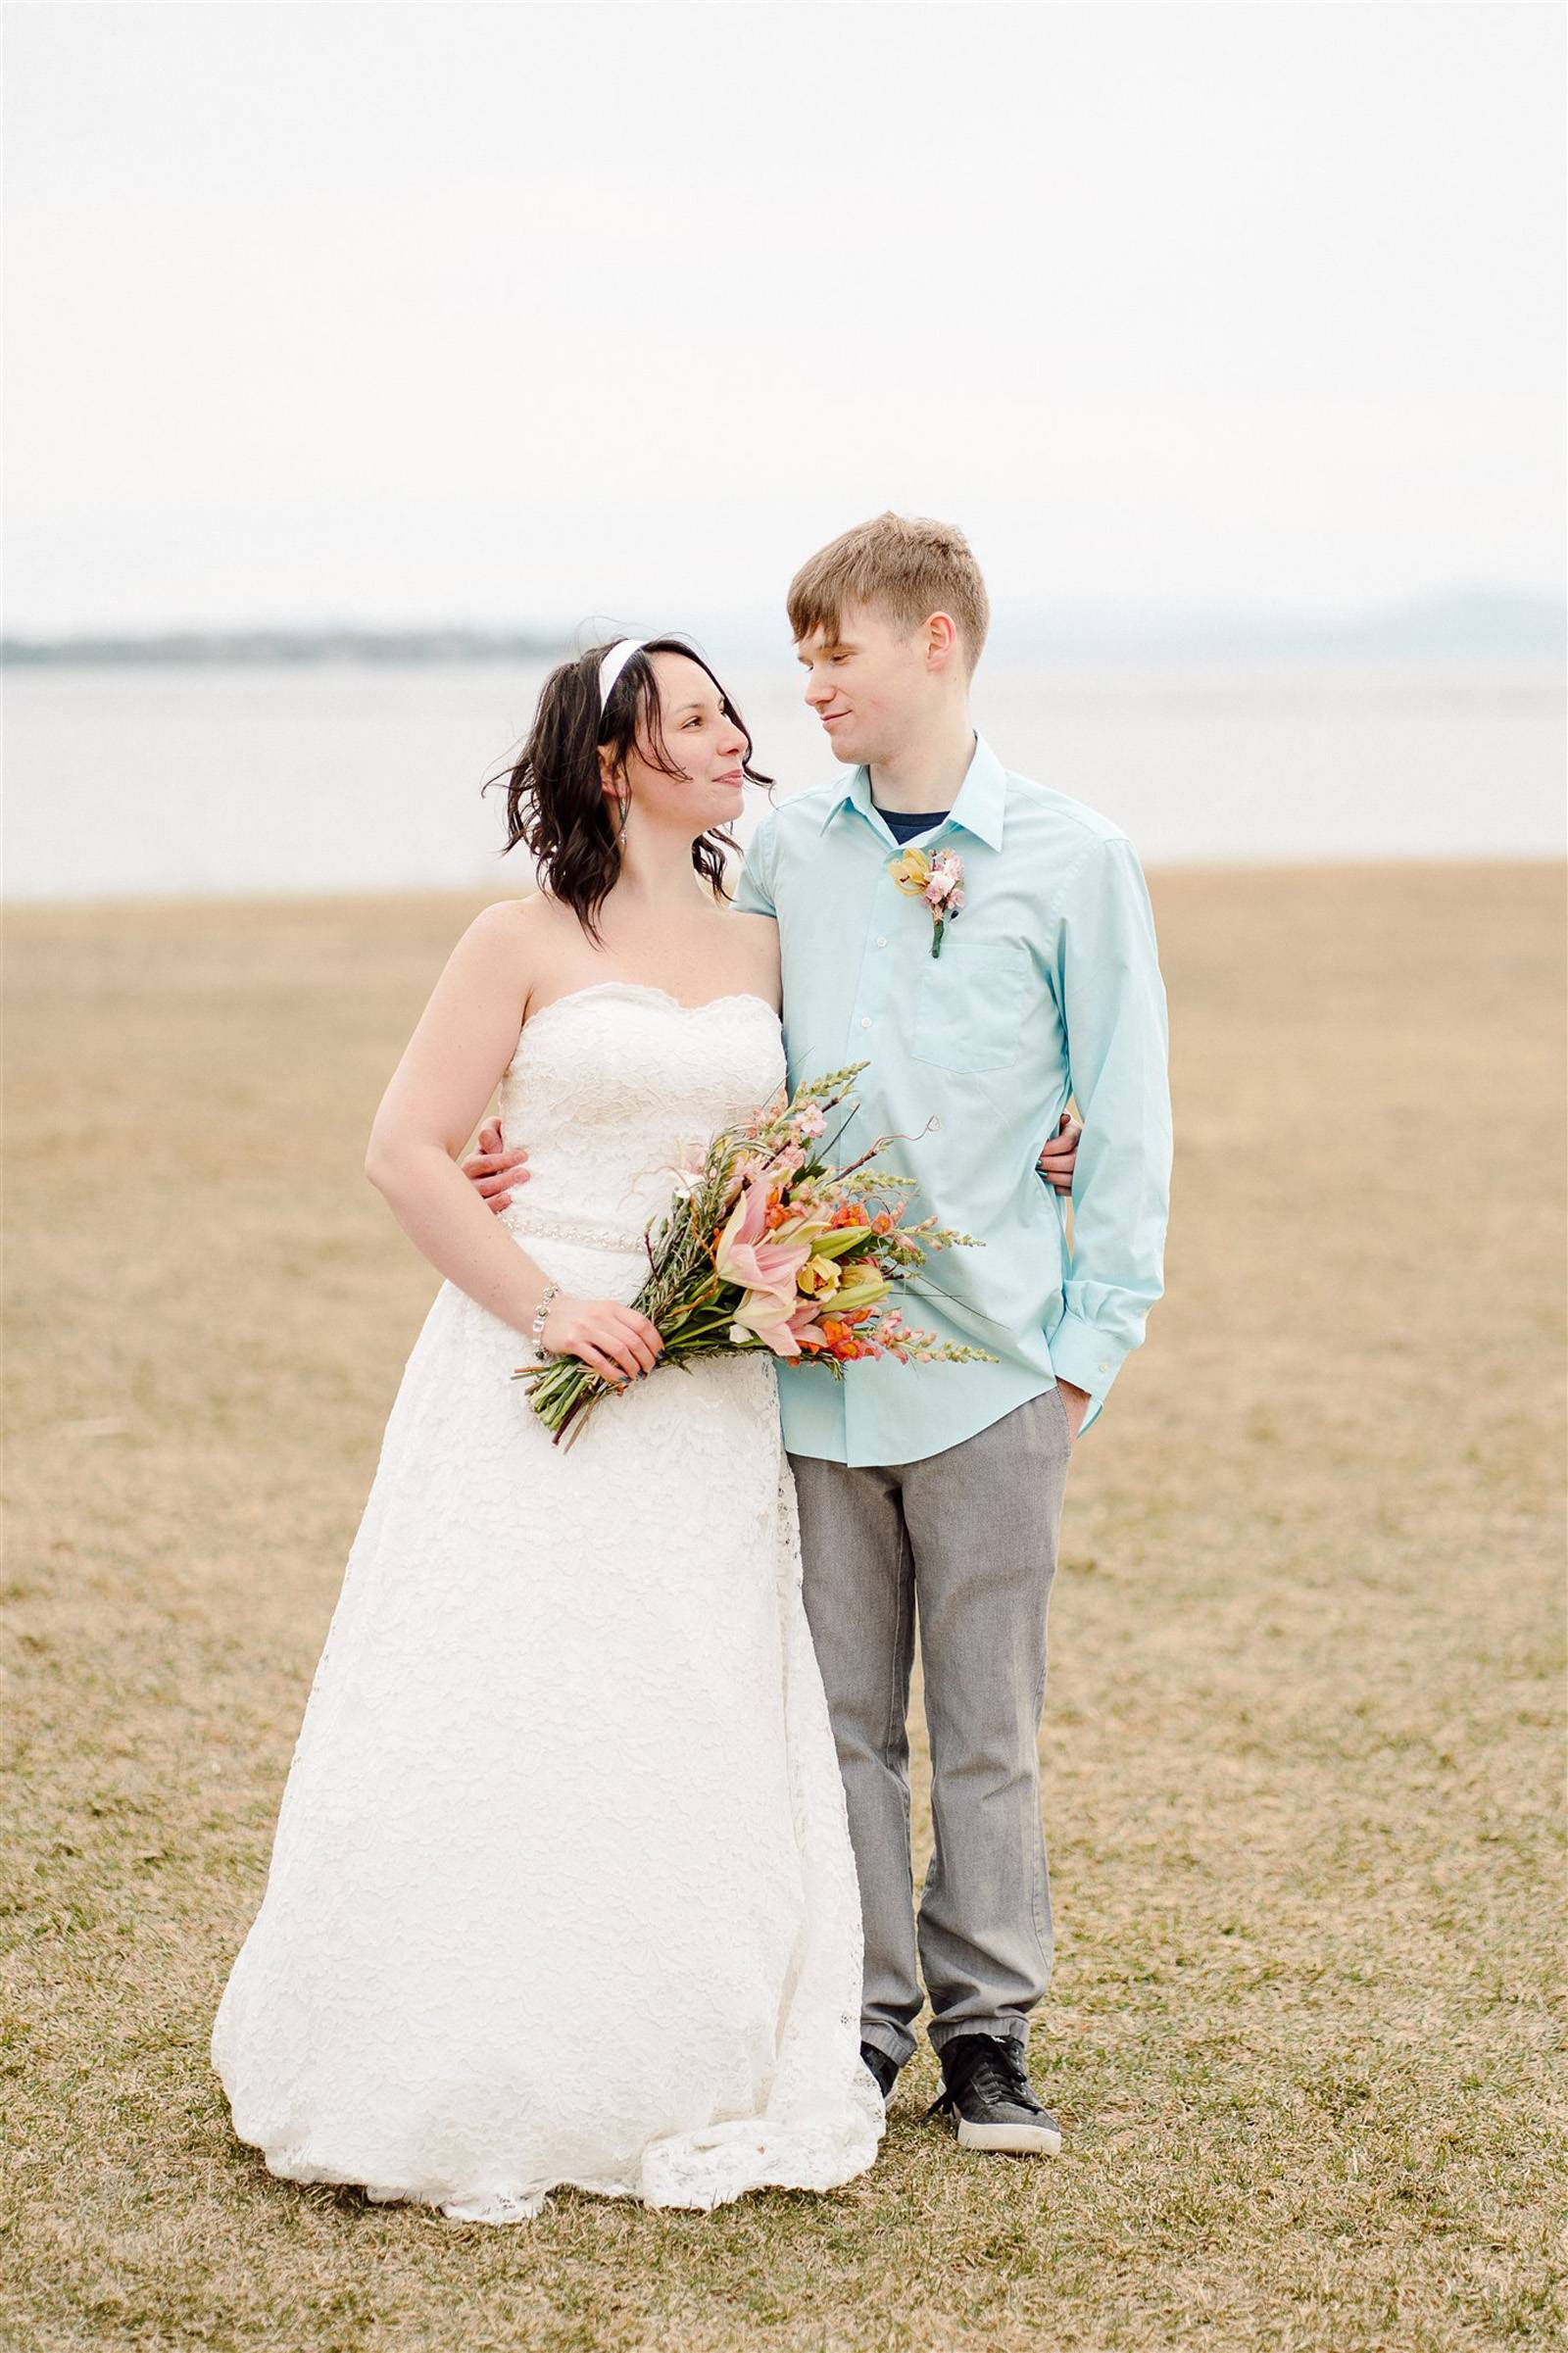 Bride and groom in Burlington's Waterfront Park during elopement